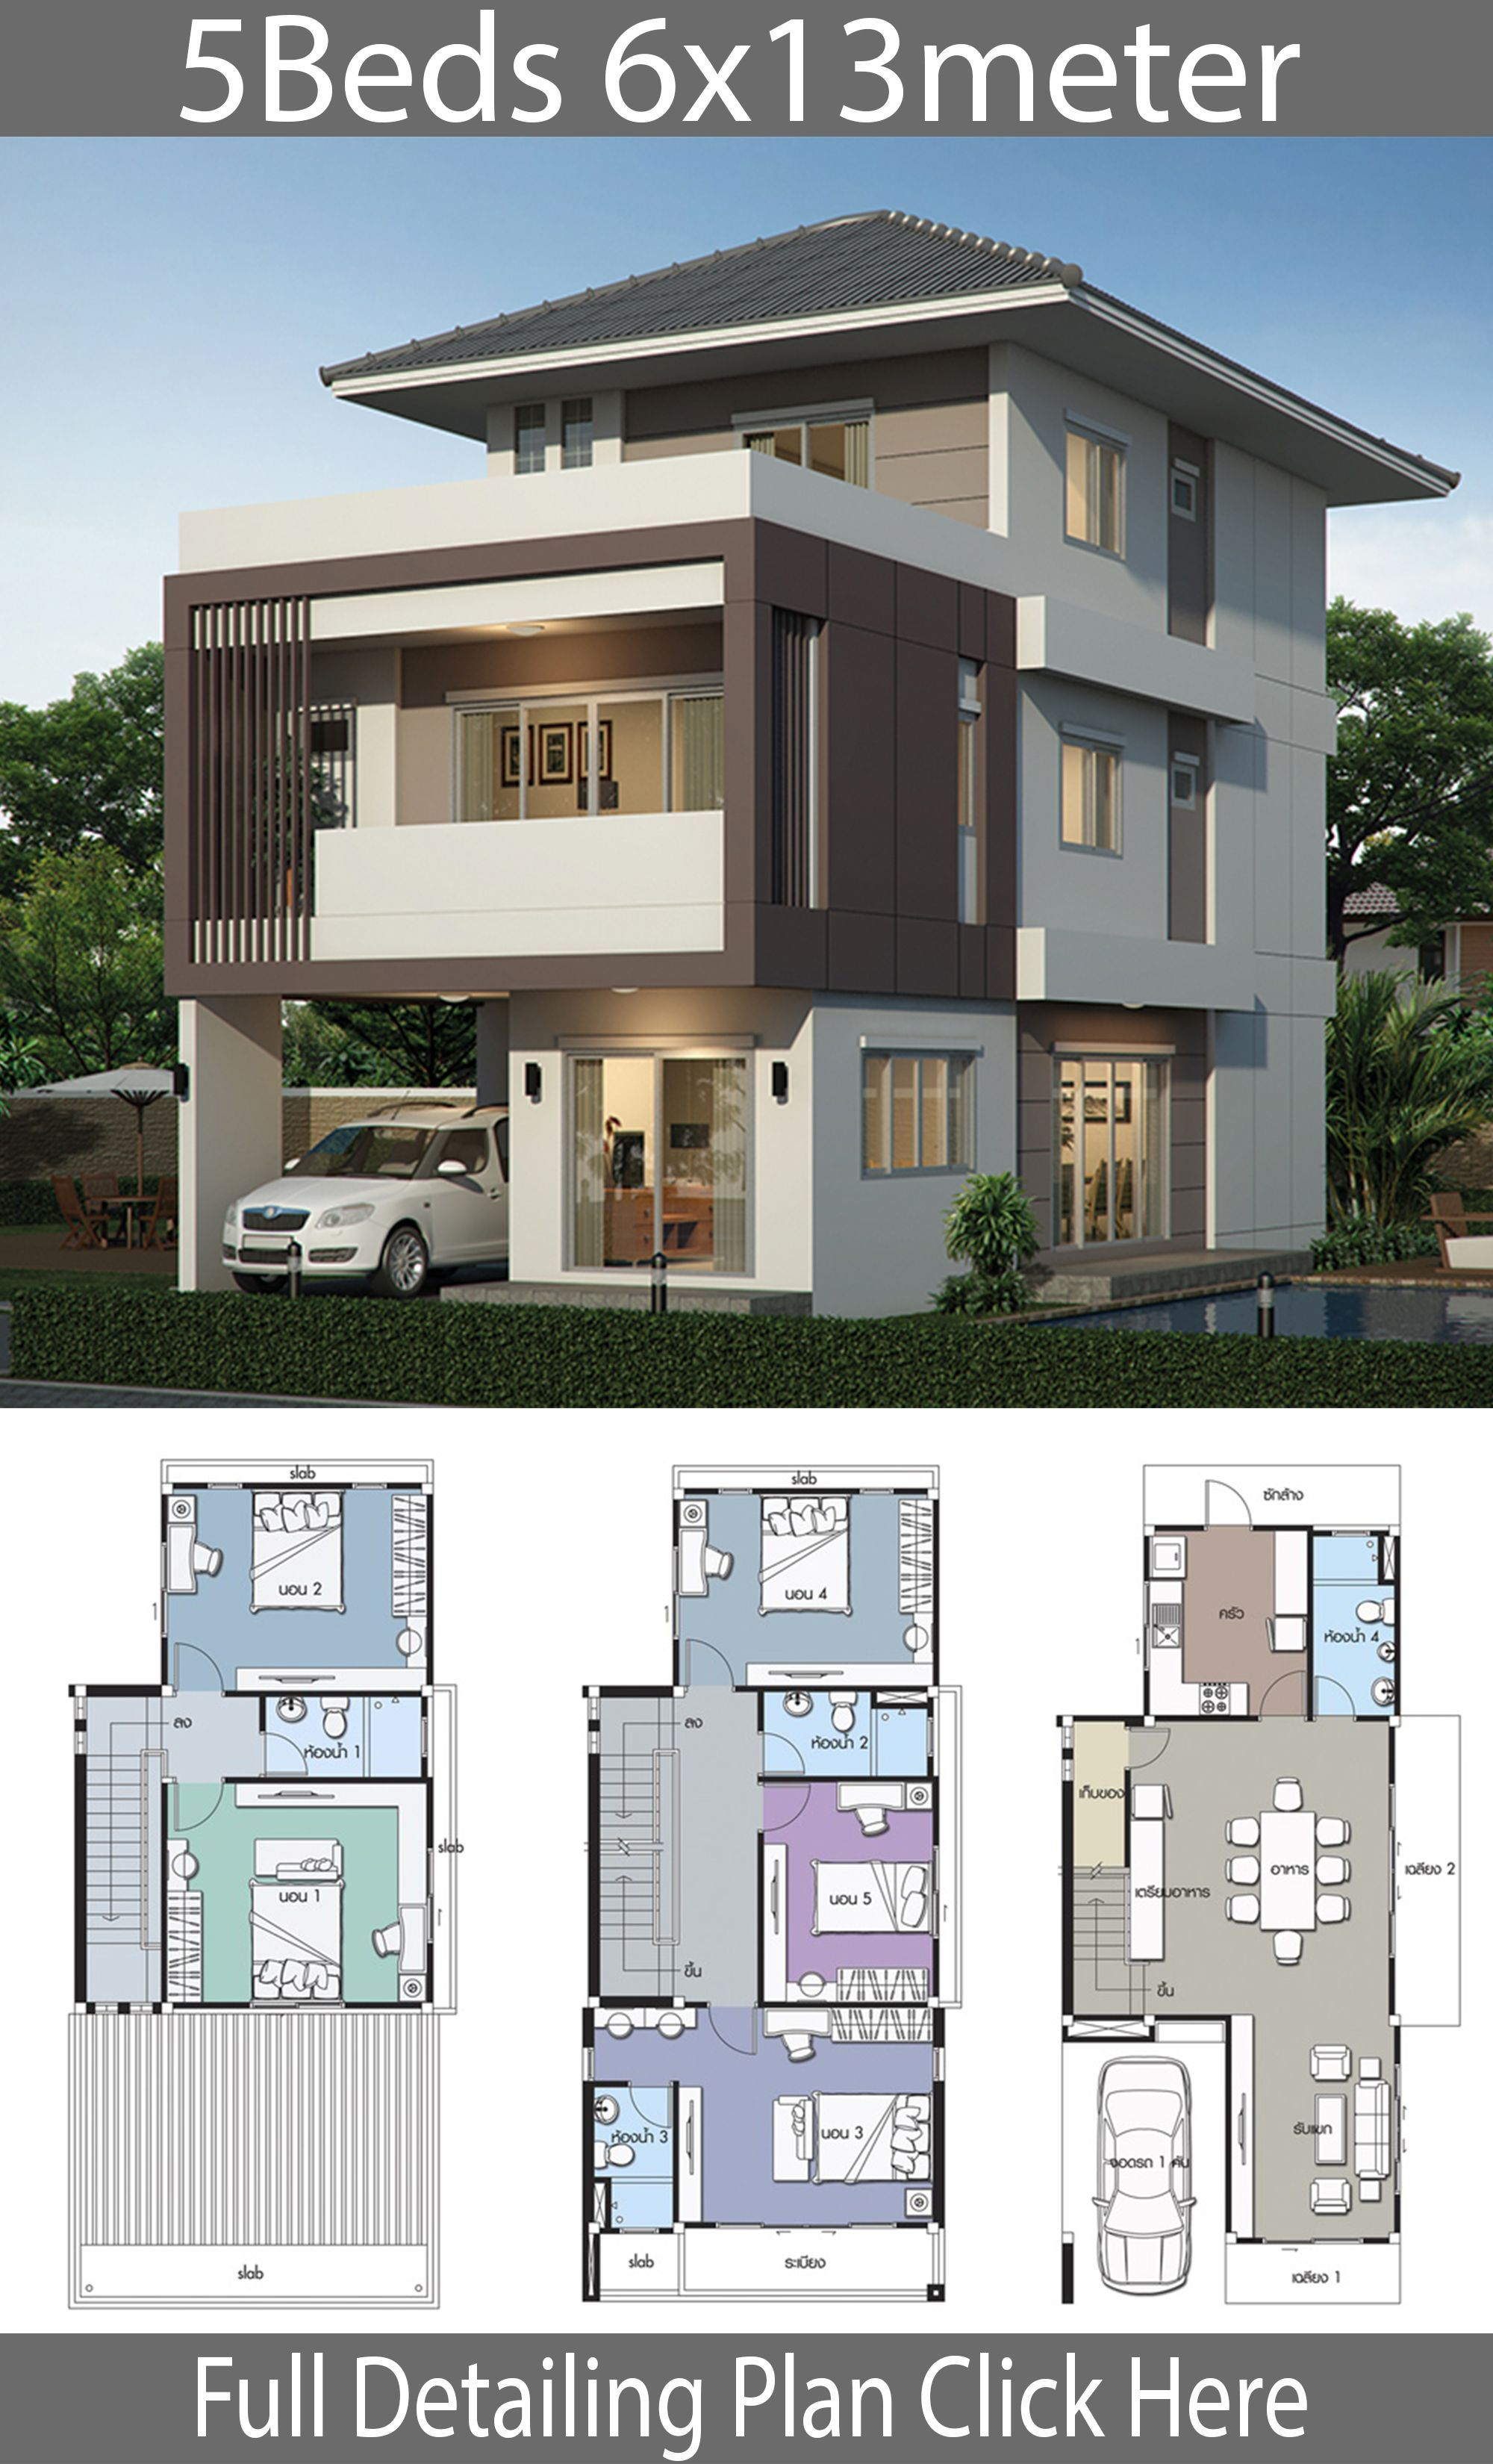 House Design Plan 6x13m With 5 Bedrooms In 2020 Duplex House Design Bungalow House Design 3 Storey House Design